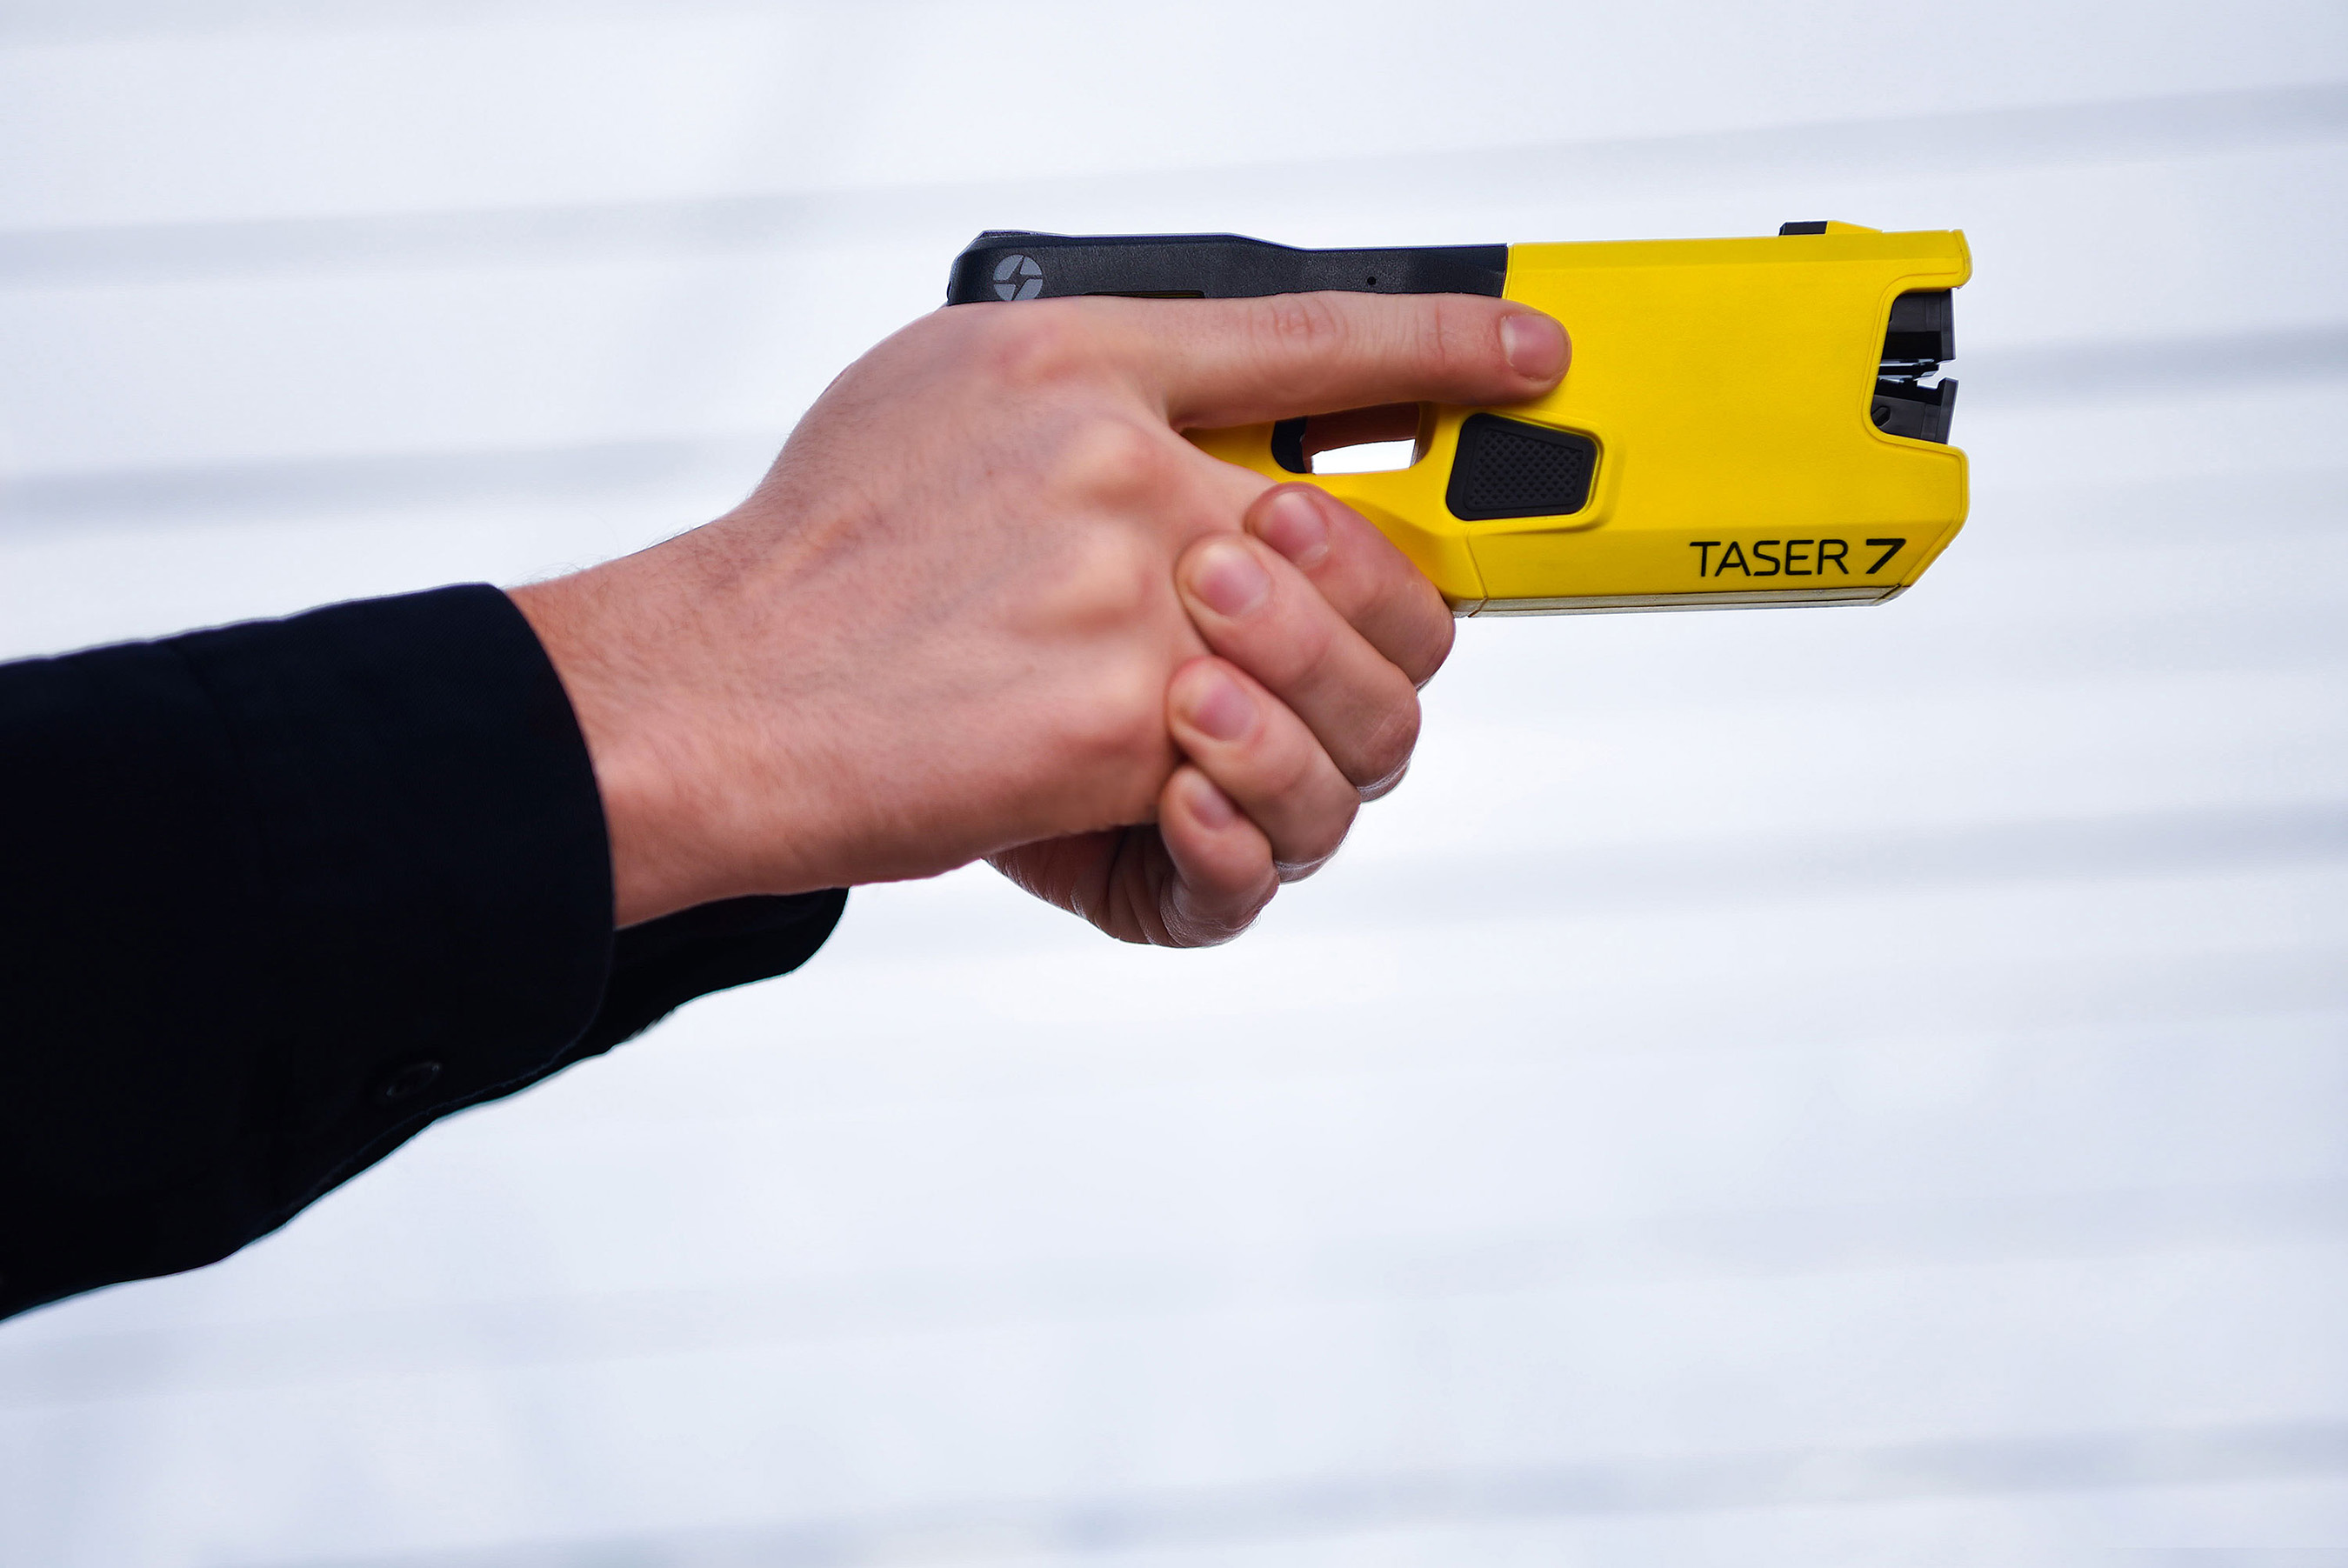 TASER 7 In Action